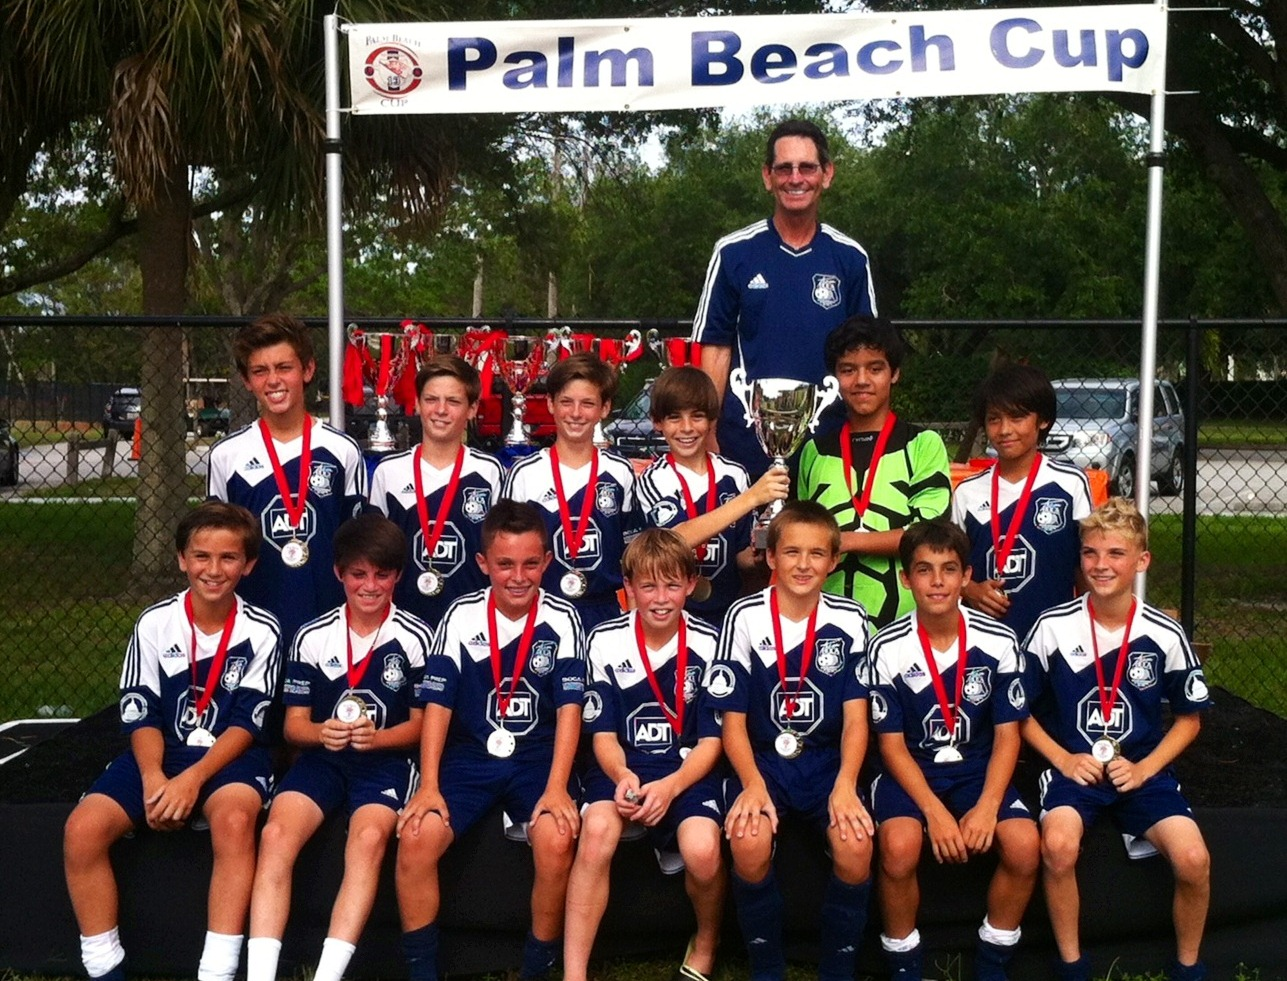 2014 Palm Beach Cup Champions